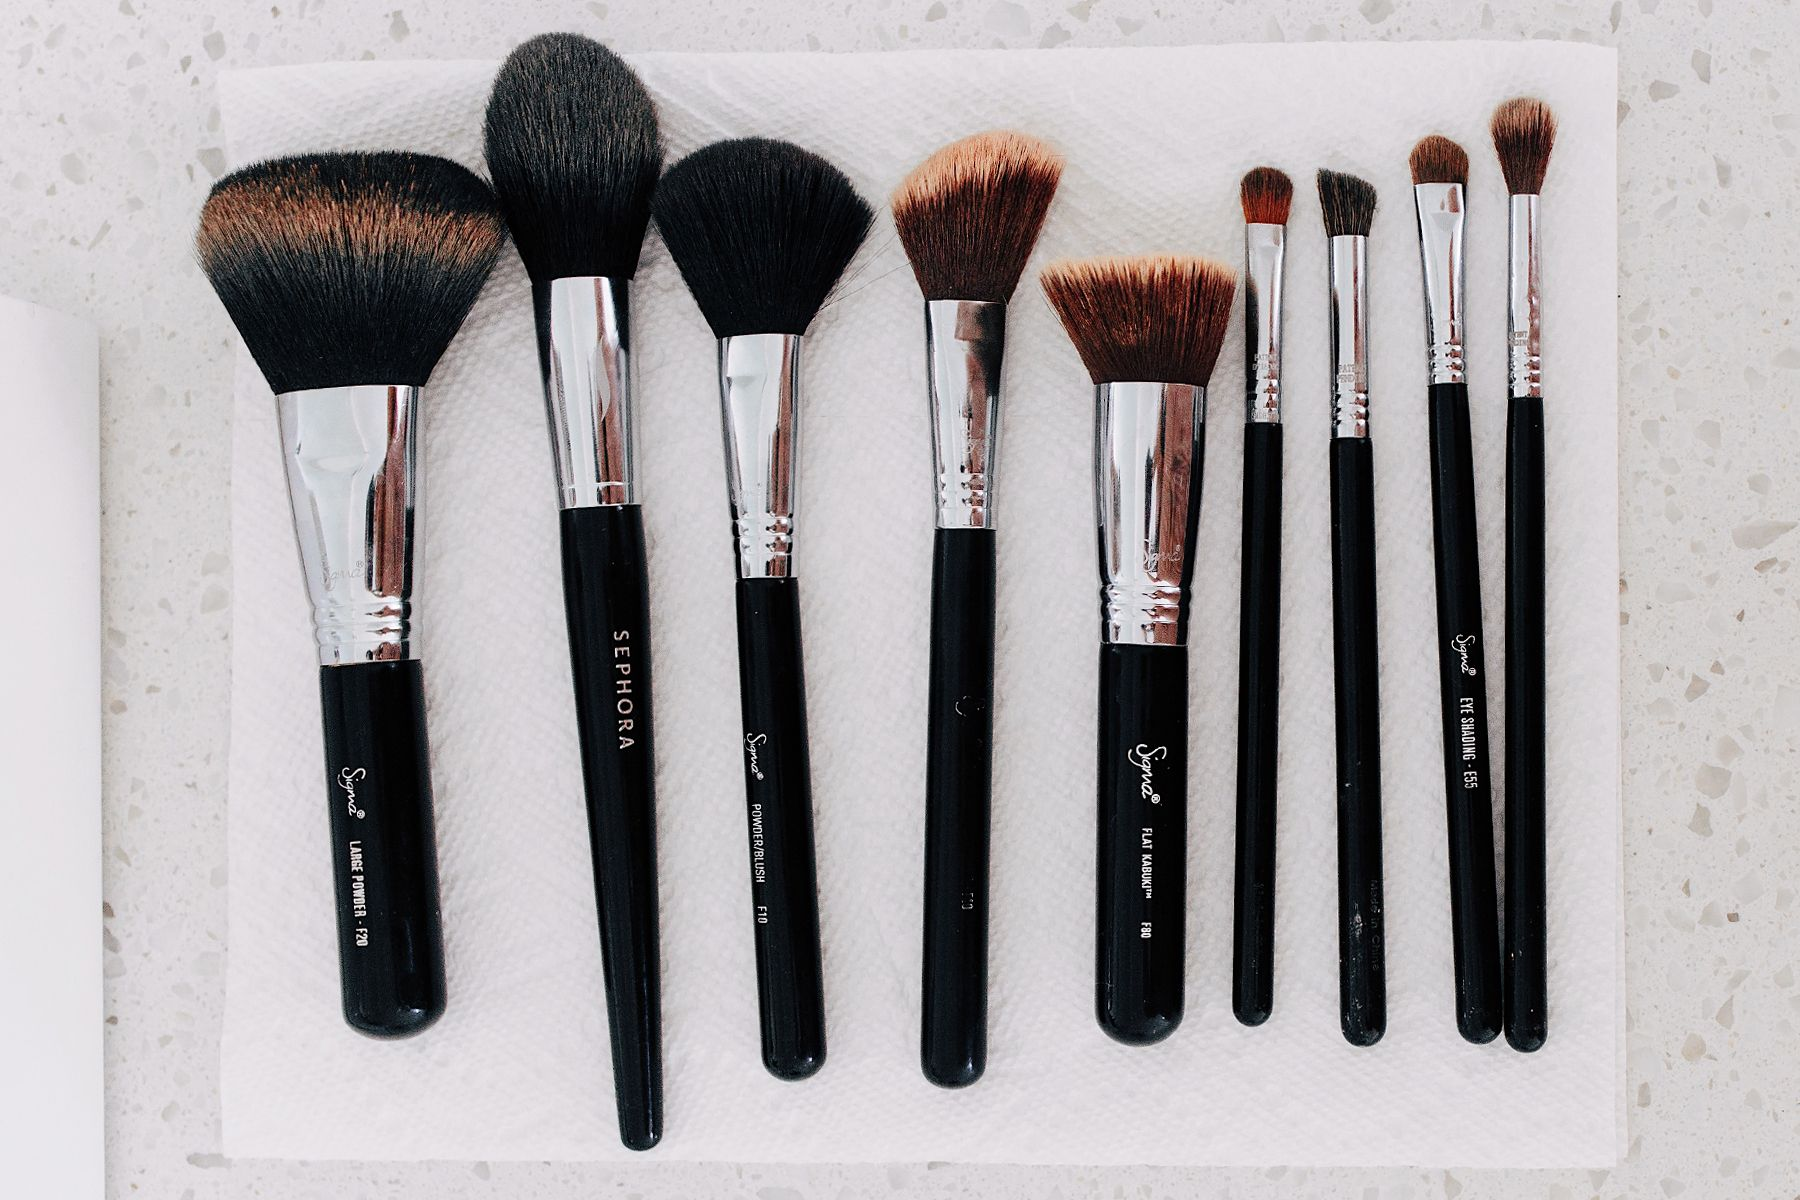 Sigma Makeup Brushes Sigma makeup brushes, How to clean